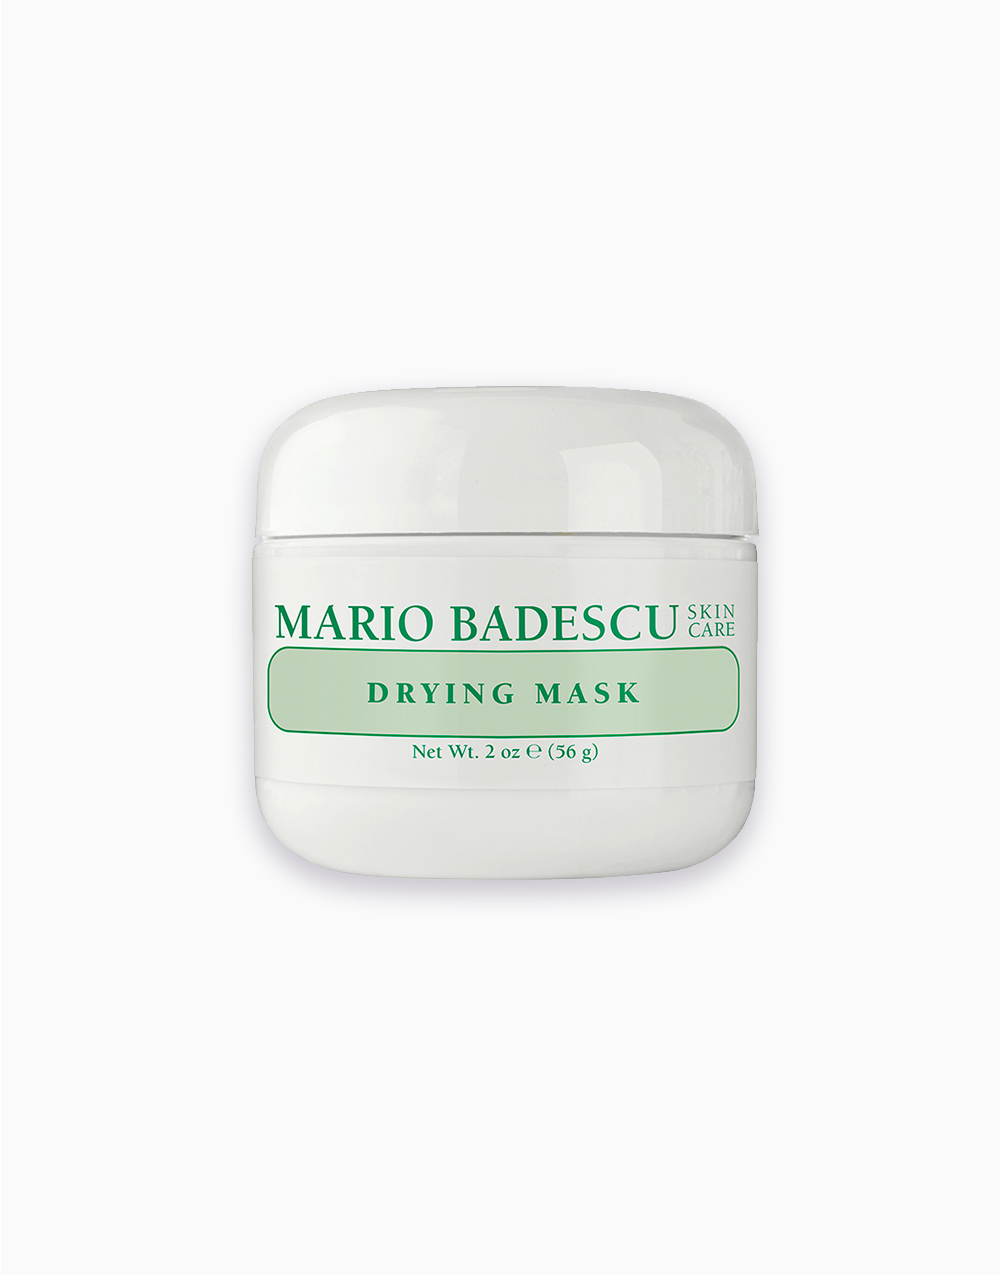 Drying Mask (2oz) by Mario Badescu